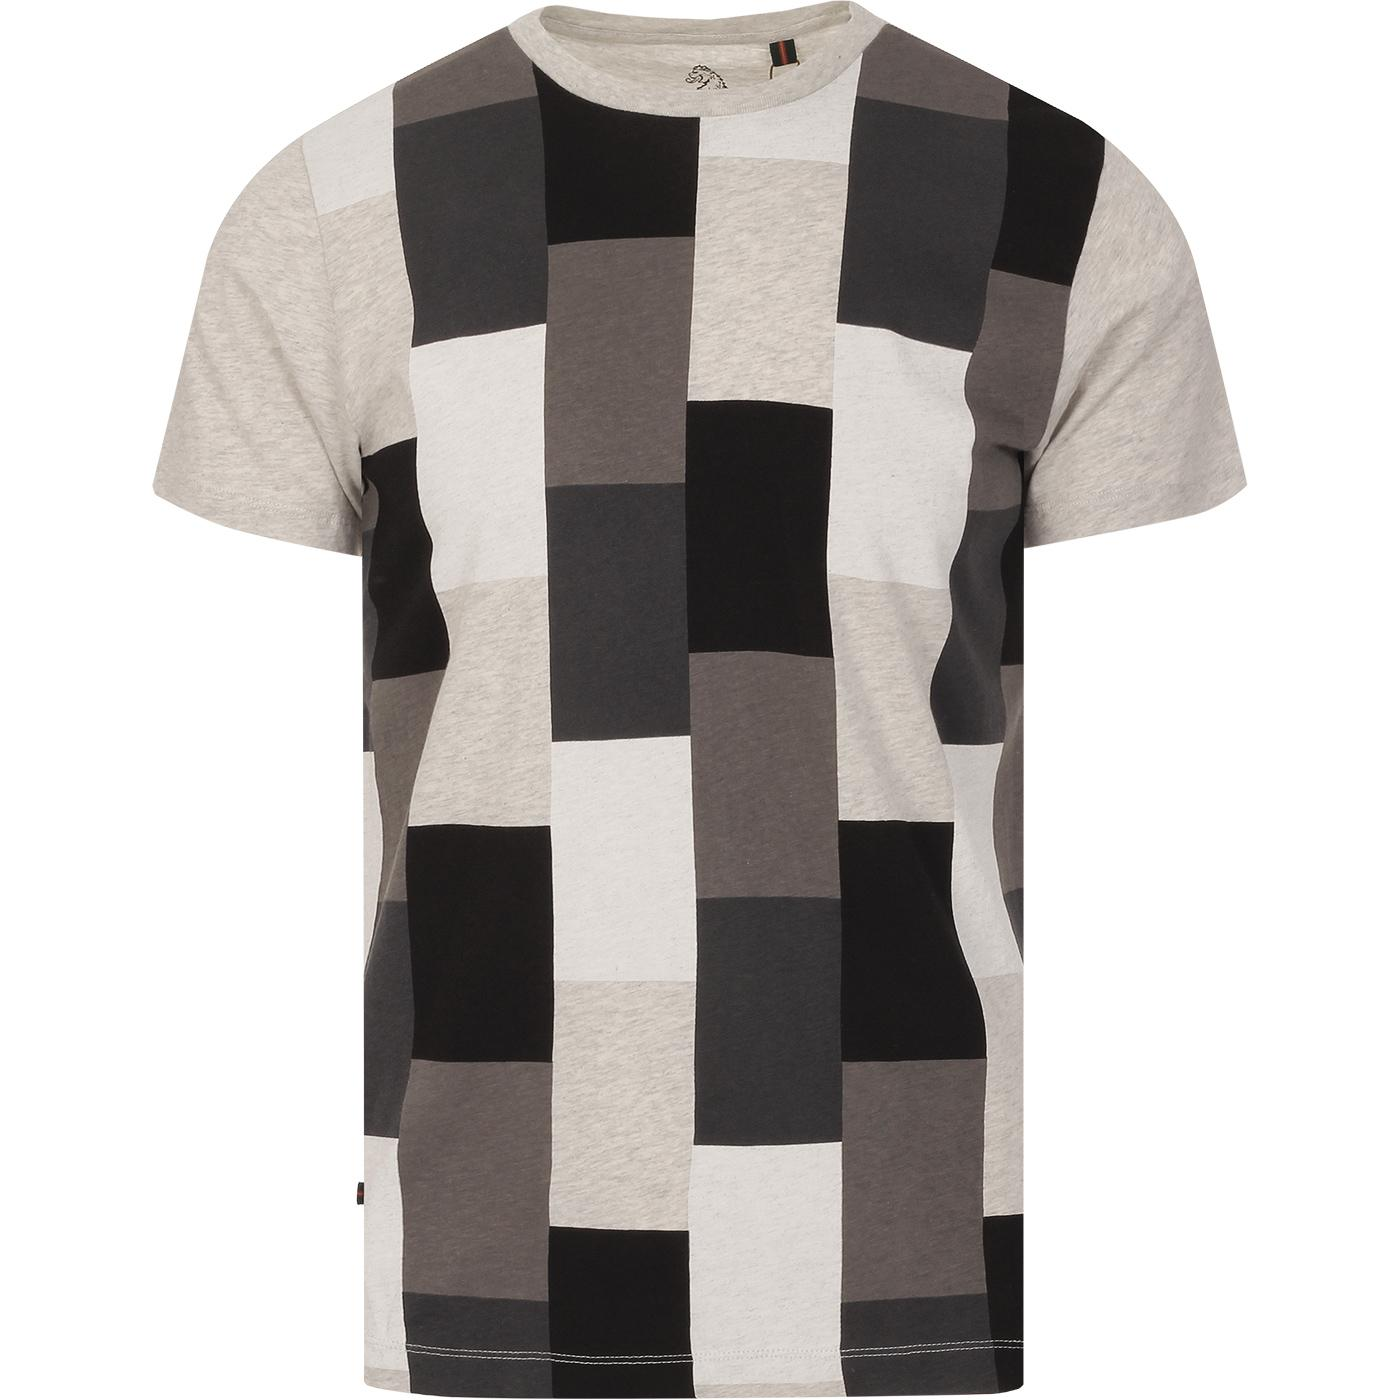 Gusty LUKE Retro Colour Block Checker Tee (Grey)